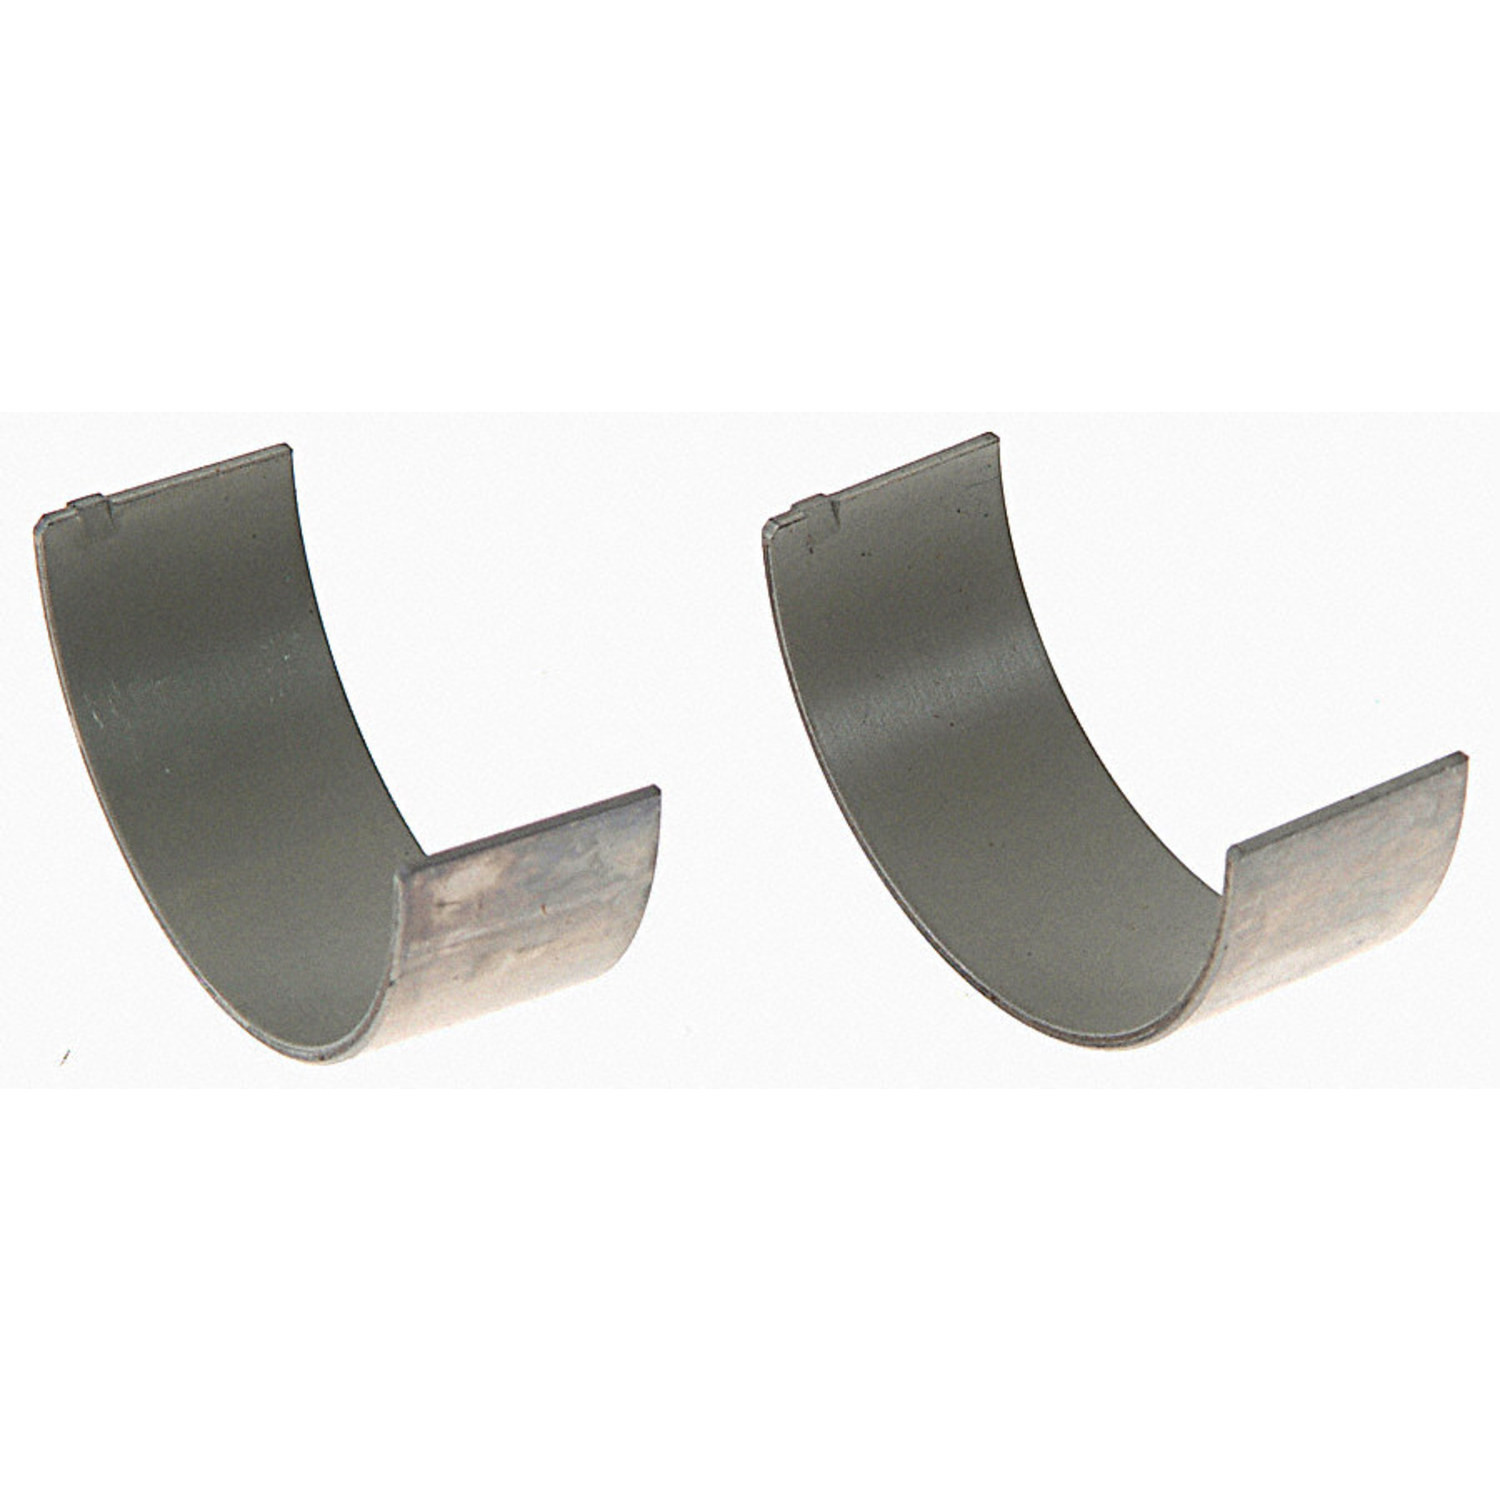 SEALED POWER - Engine Connecting Rod Bearing - SEA 2555CP 30